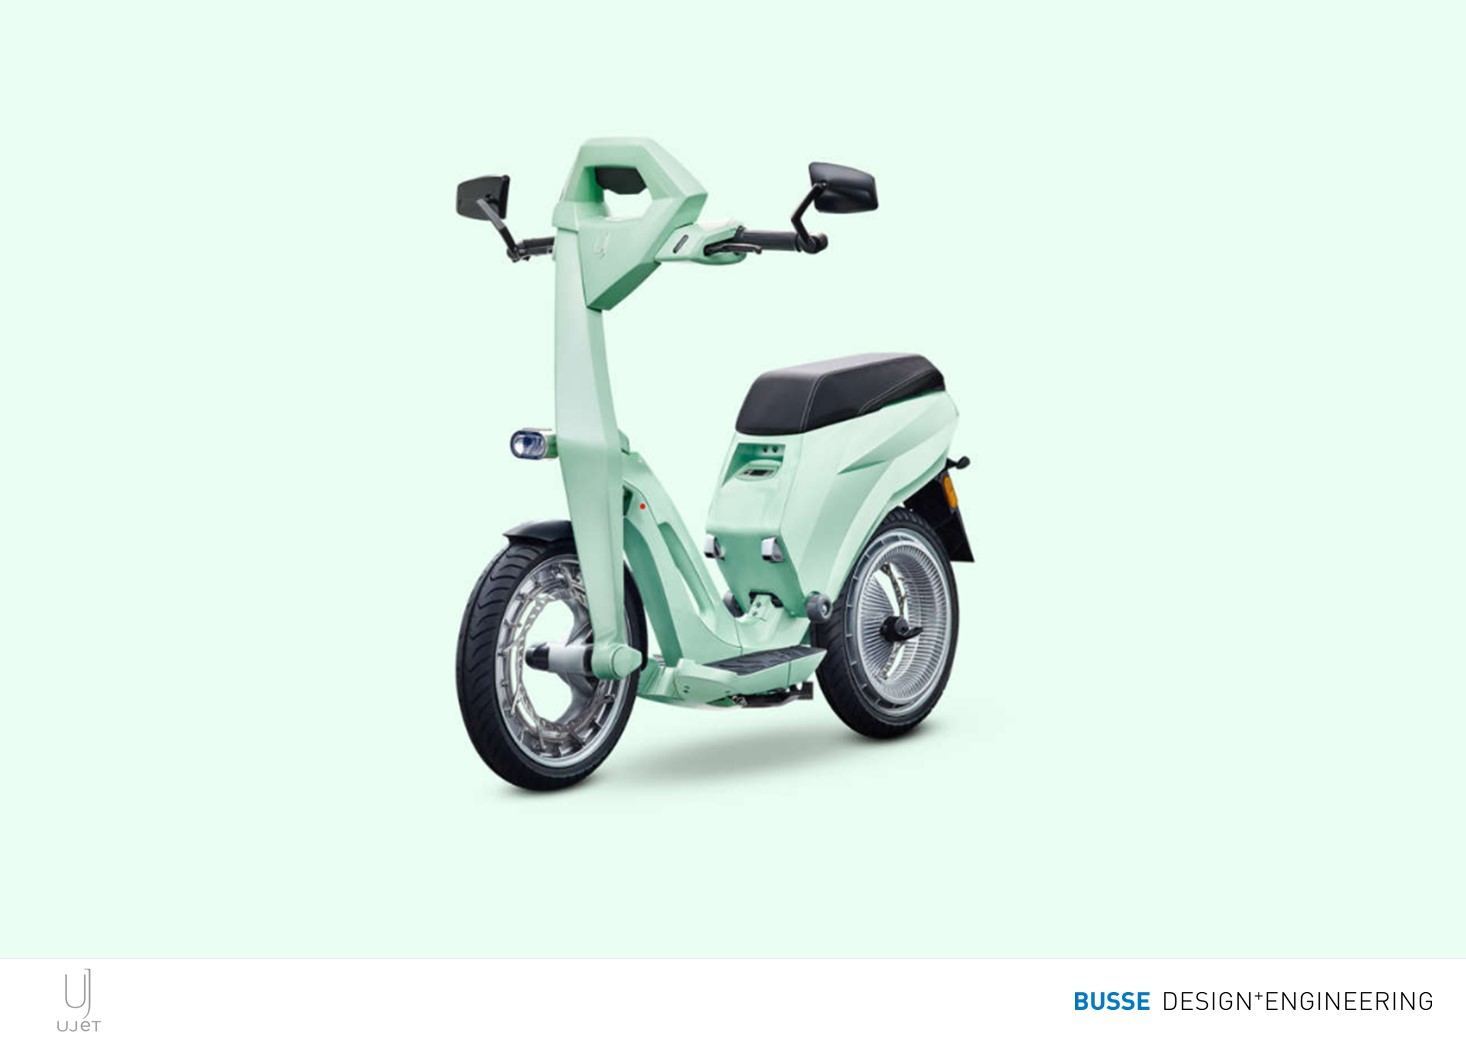 Ujet One Electric Scooter